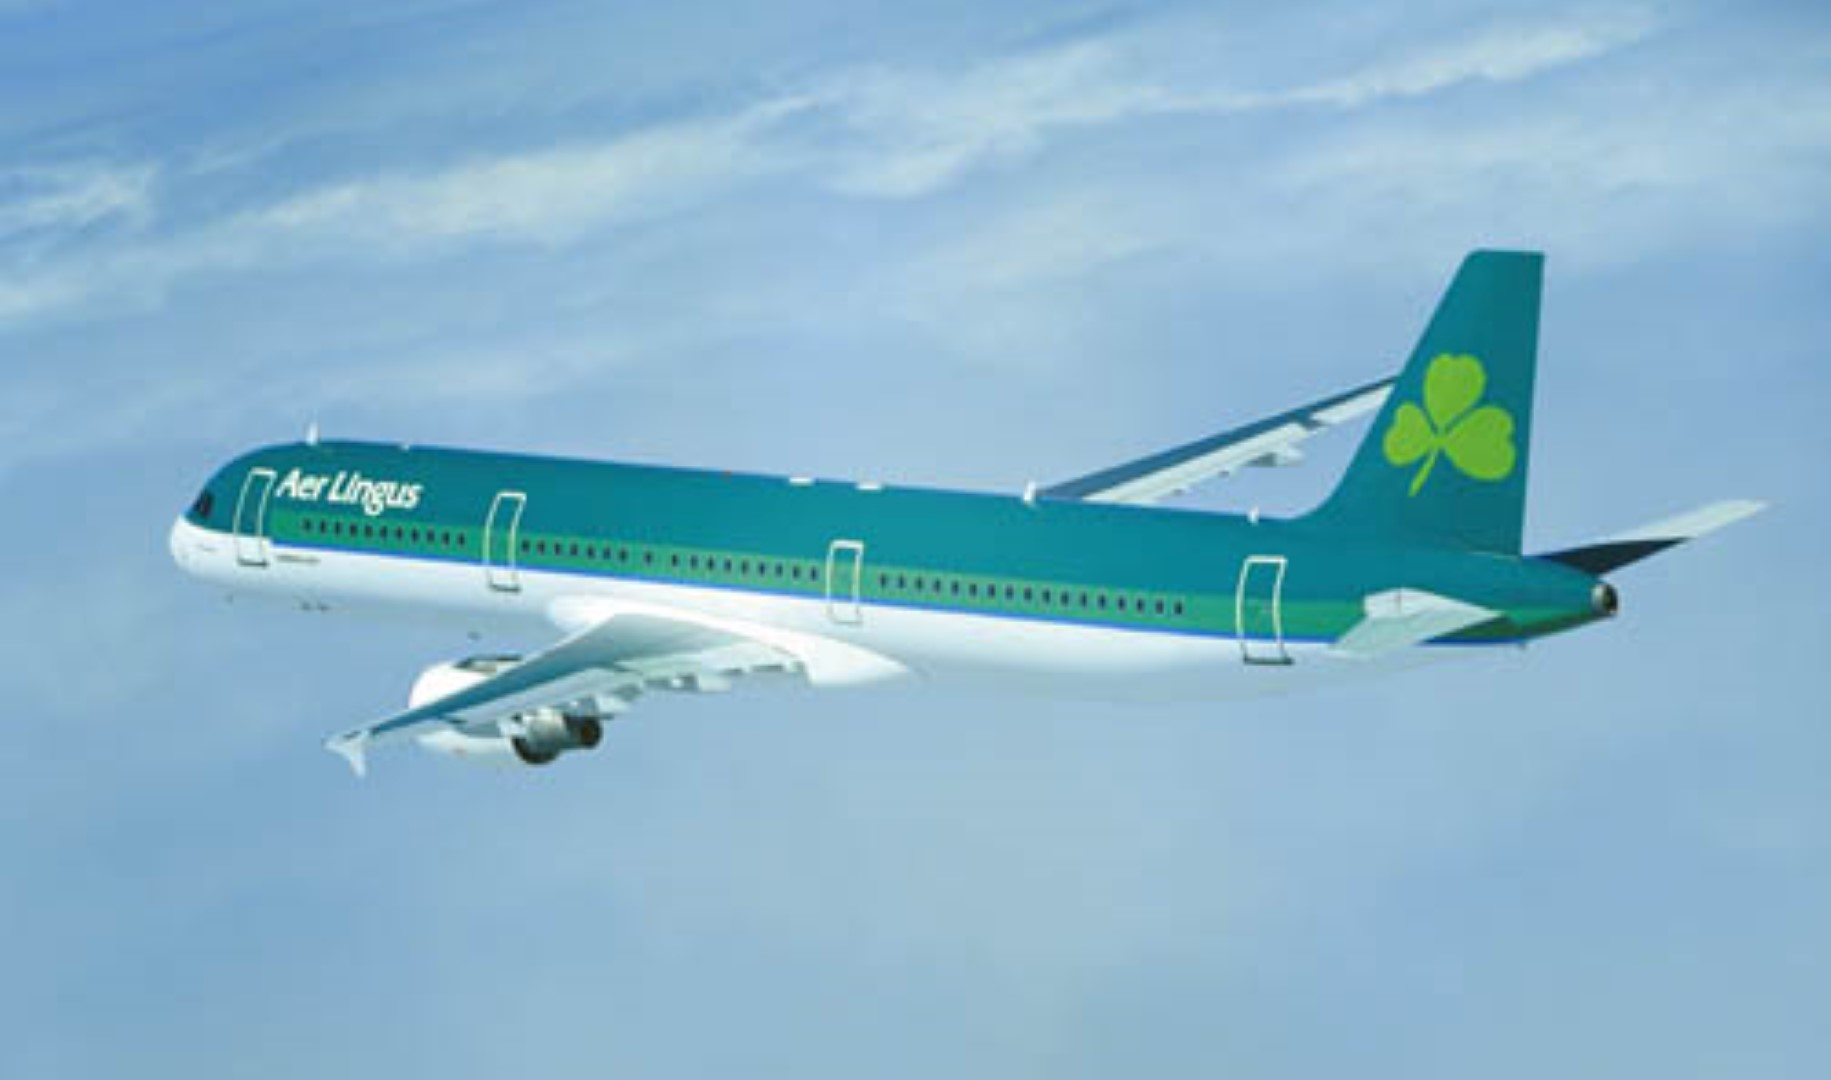 Aer Lingus and Icelandair allow for more options with connections. Image: Aer Lingus